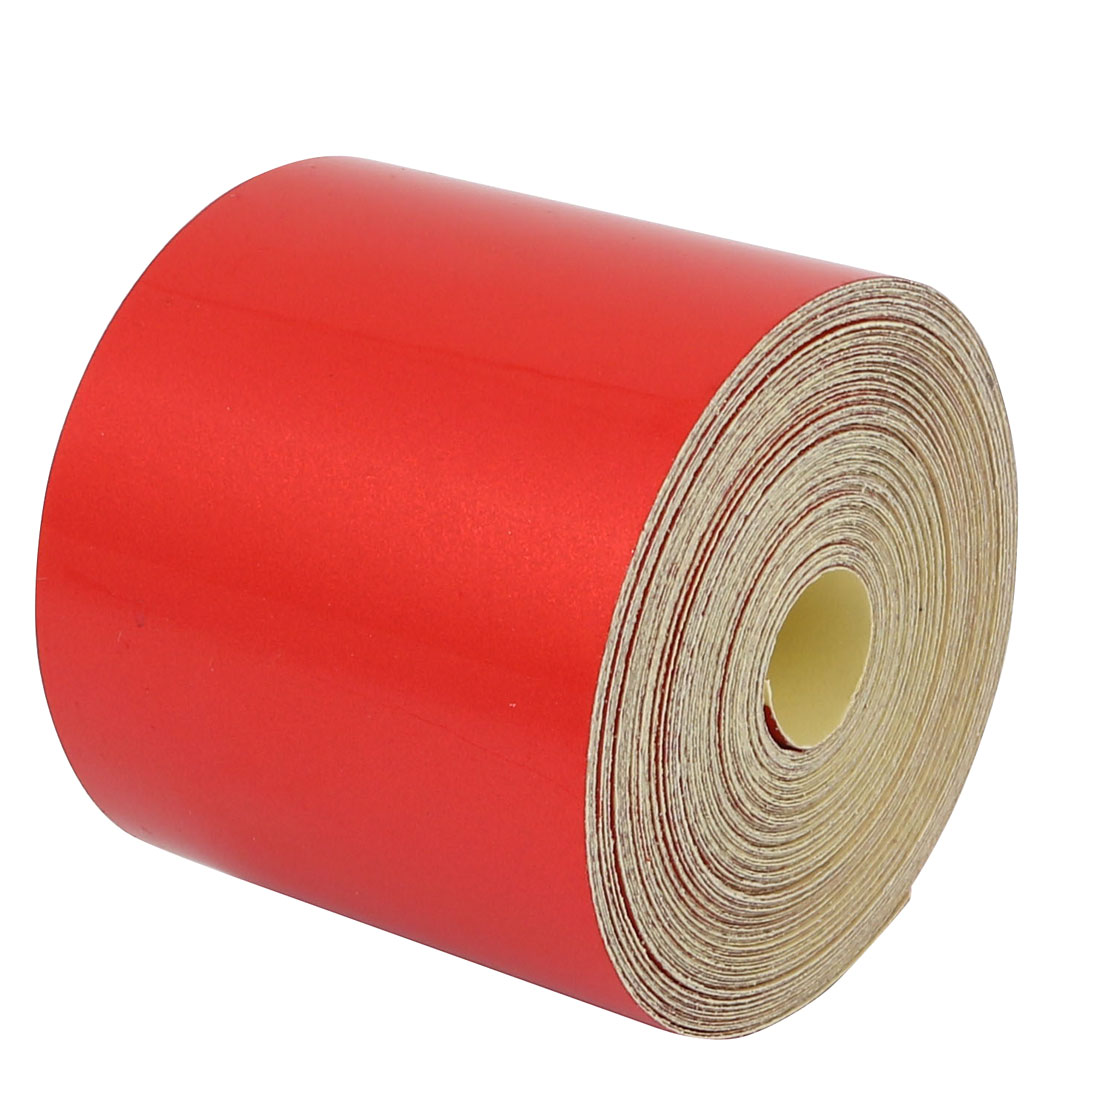 5cm Width 10M Length Single Sided Adhesive Reflective Warning Tape Red